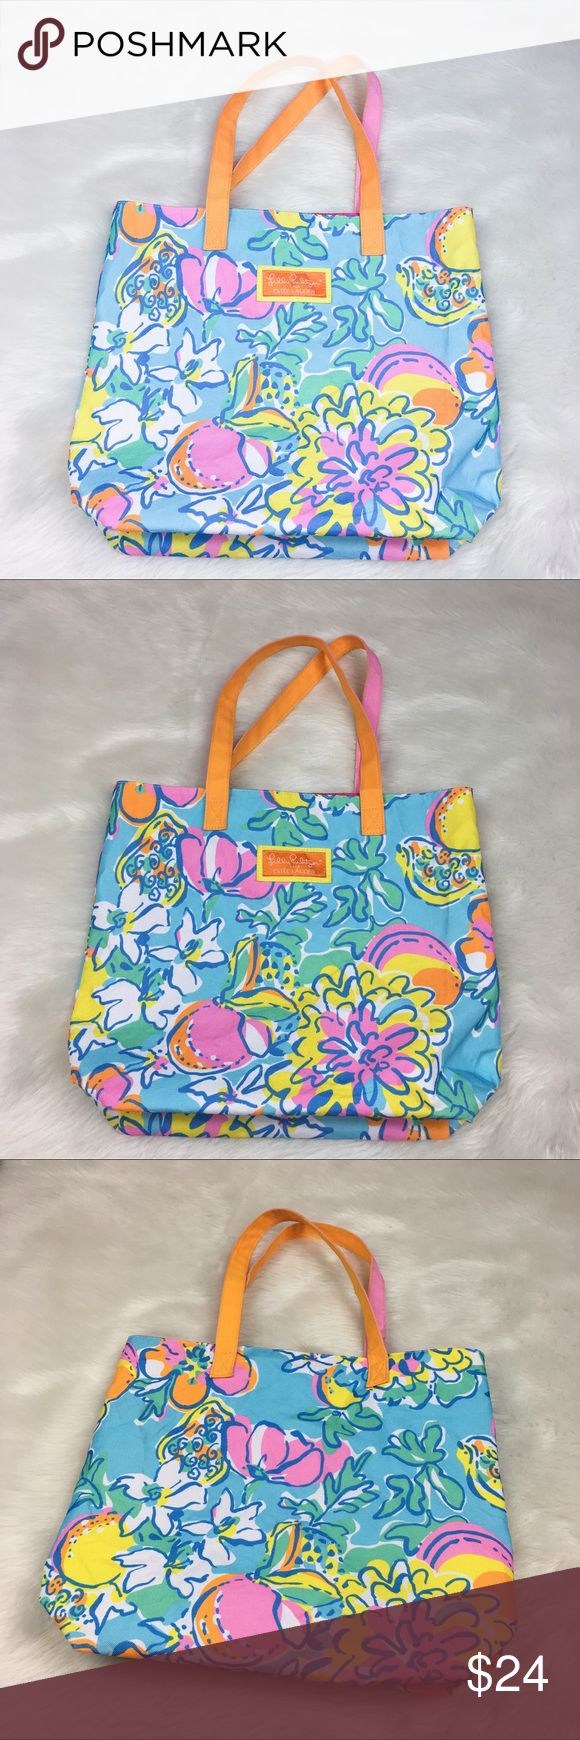 Lilly Pulitzer for Estee Lauder Tote Lilly Pulitzer for Estée Lauder tote bag. One size. Approximate measurements flat laid 14' long, 12' wide, and 5' deep. GUC with some wear to the outside and just a few light stains in the inside bottom. Perfect for a beach tote!! ❌ Modeling ❌No PayPal or off Posh transactions ❤️ I 💕Bundles ❤️Reasonable Offers PLEASE ❤️ Bundle & SAVE❗️❗️ Lilly Pulitzer Bags Totes